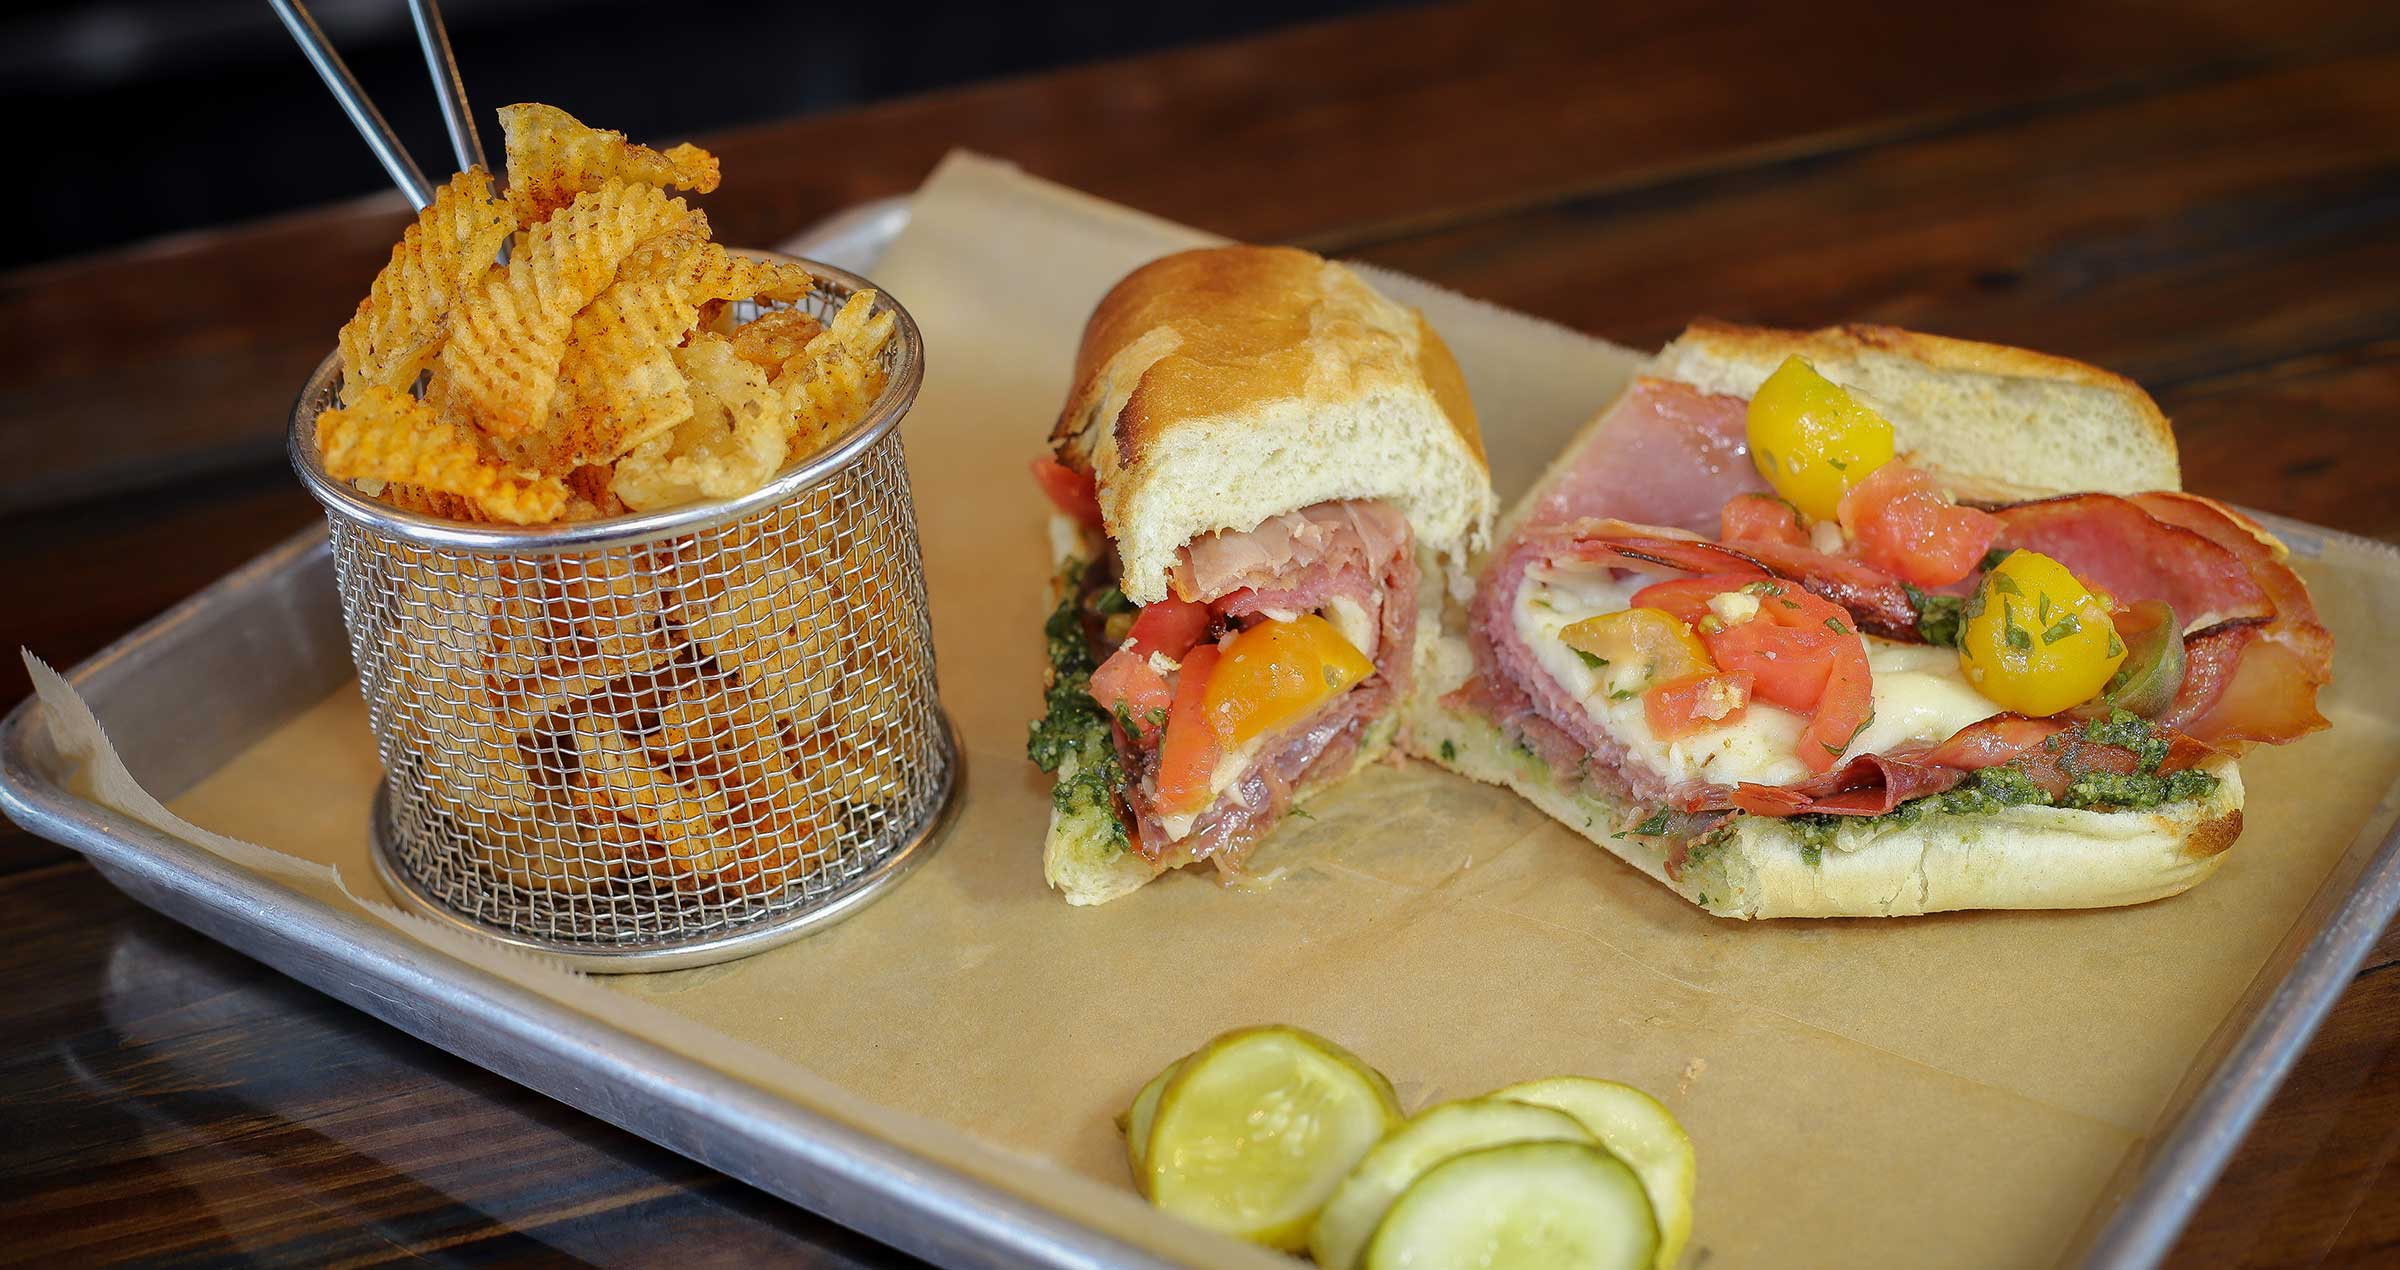 Italian sub with homemade chips and pickels